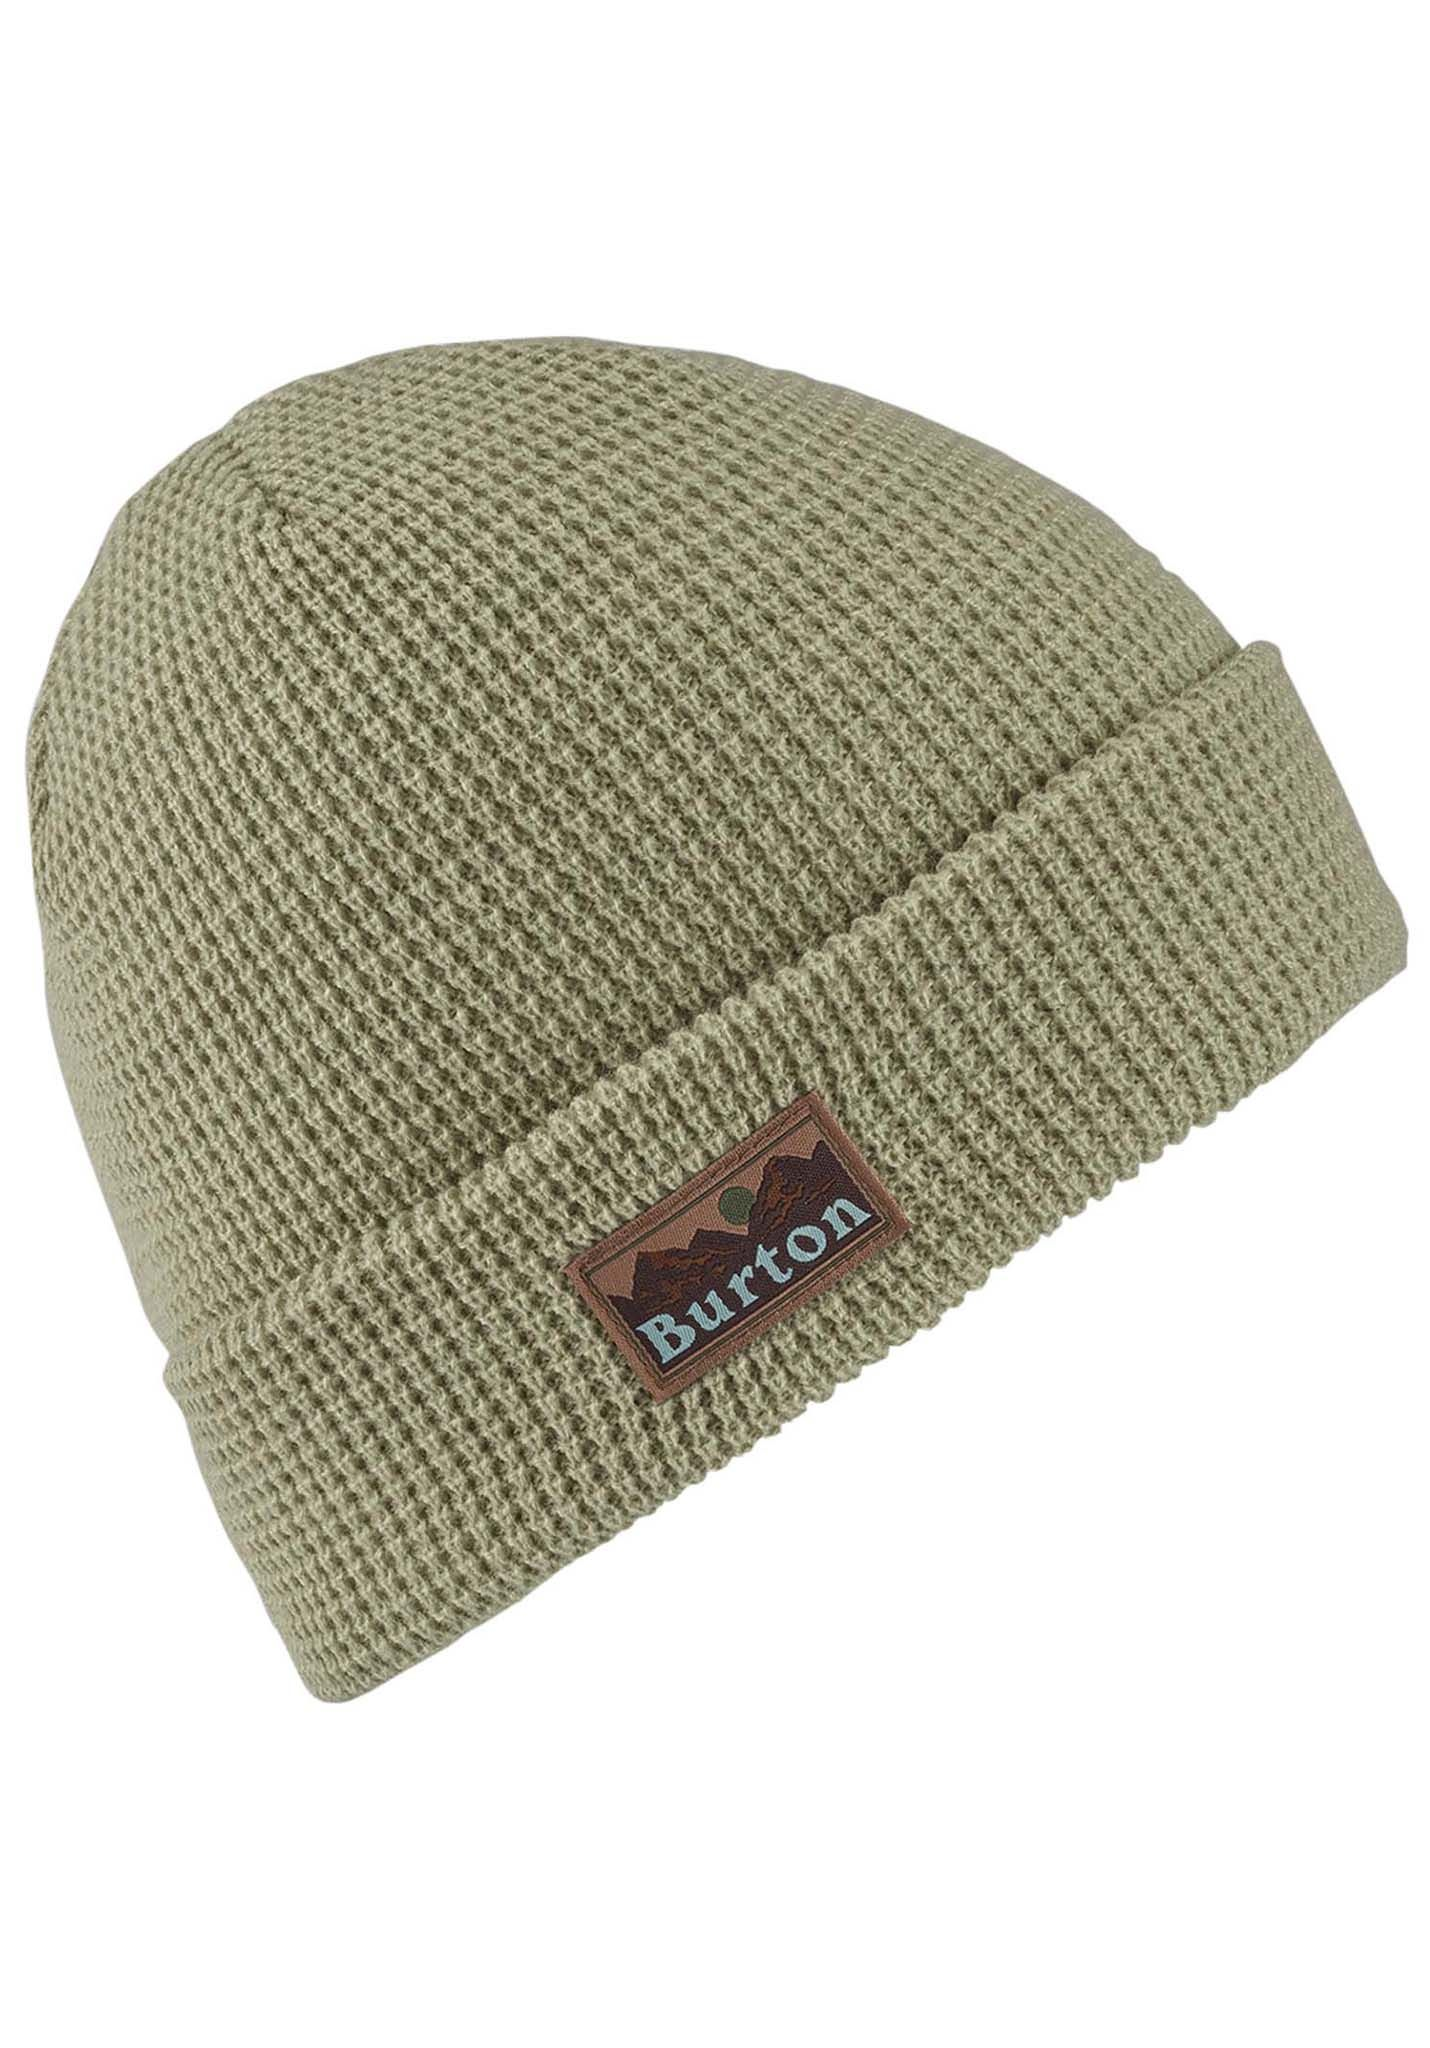 572f49c3fe6 Burton Waffle - Beanie for Men - Brown - Planet Sports